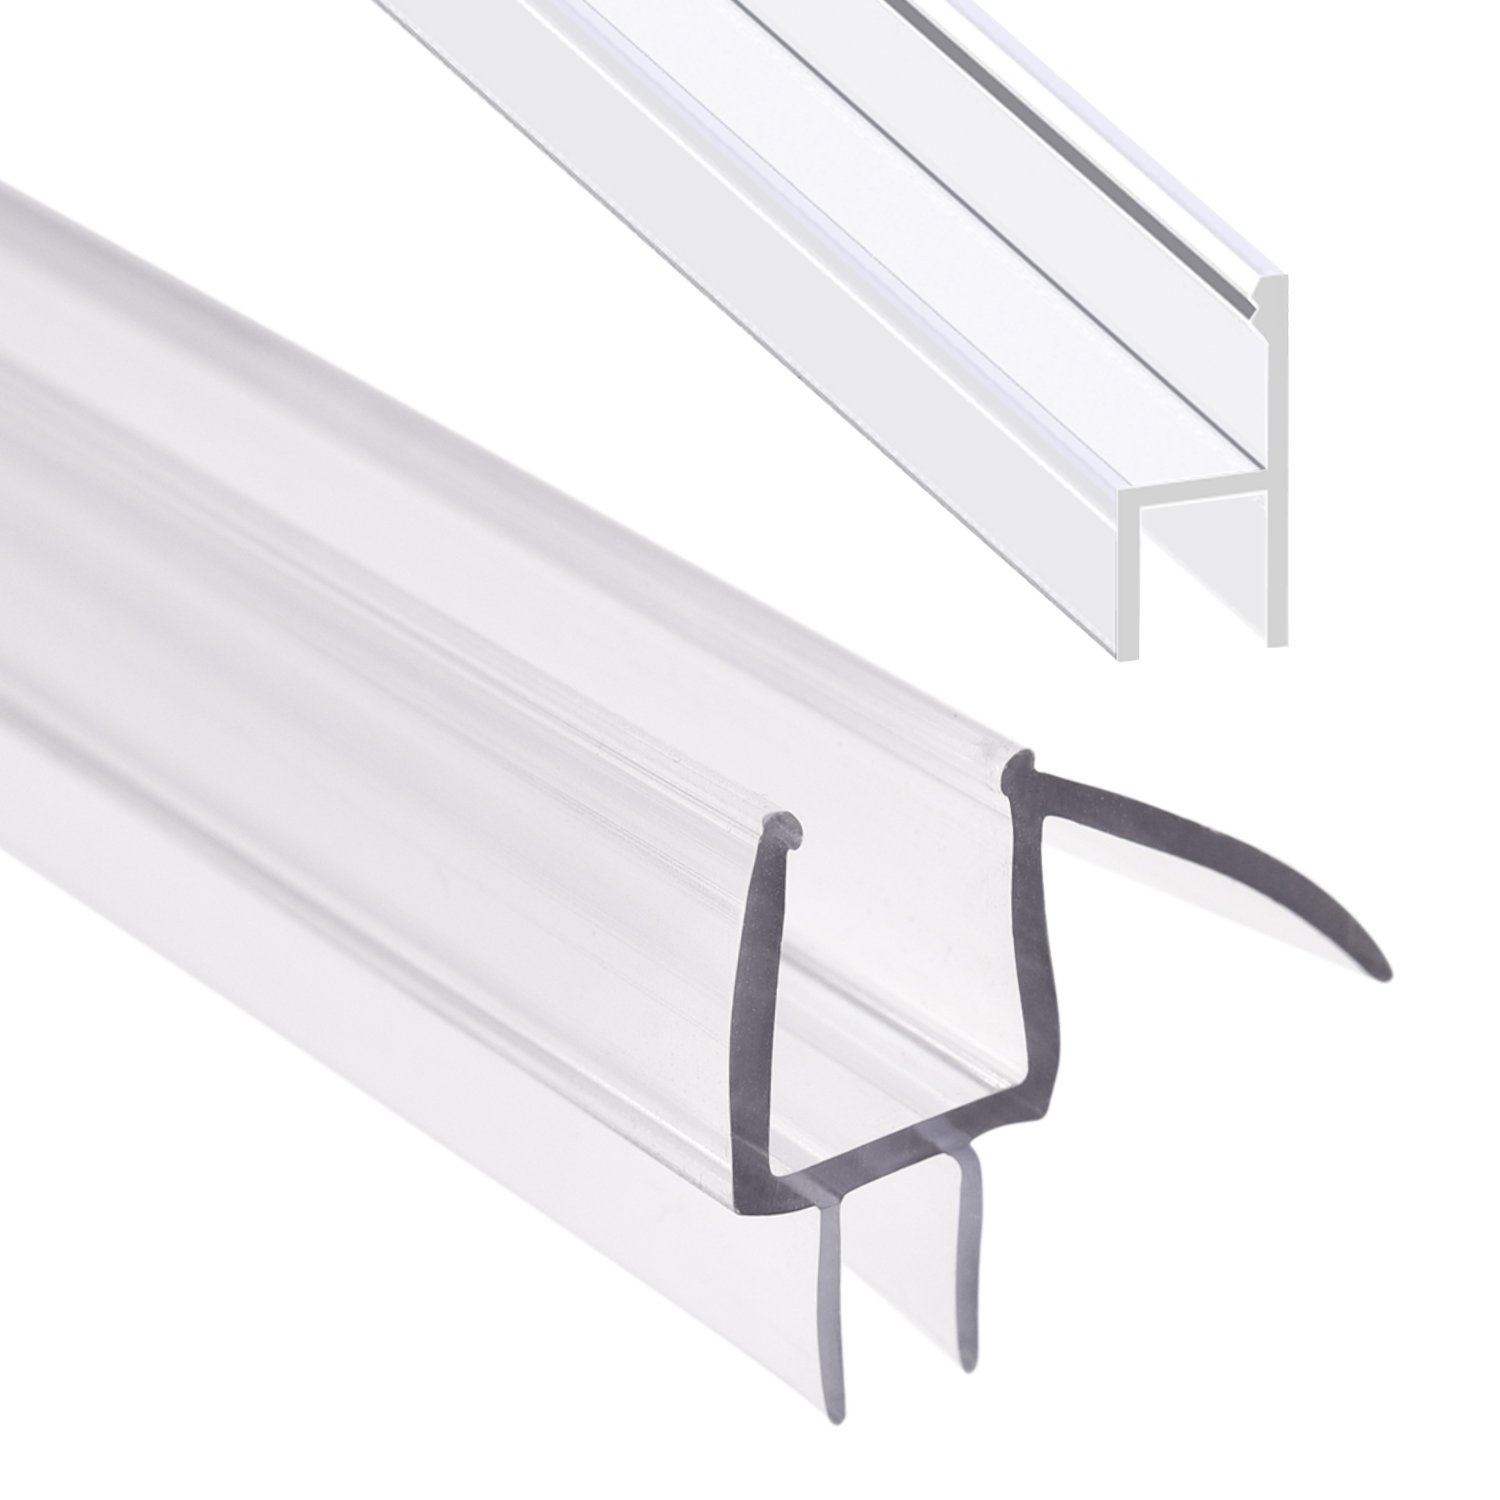 Shower Door Sweep Frameless Glass Seal Weather Outdoor Electrical Boxes Use Rubber Gaskets To Out Stripping For Bottom 36 Inch Length M 3 8 72 H Inch10mm